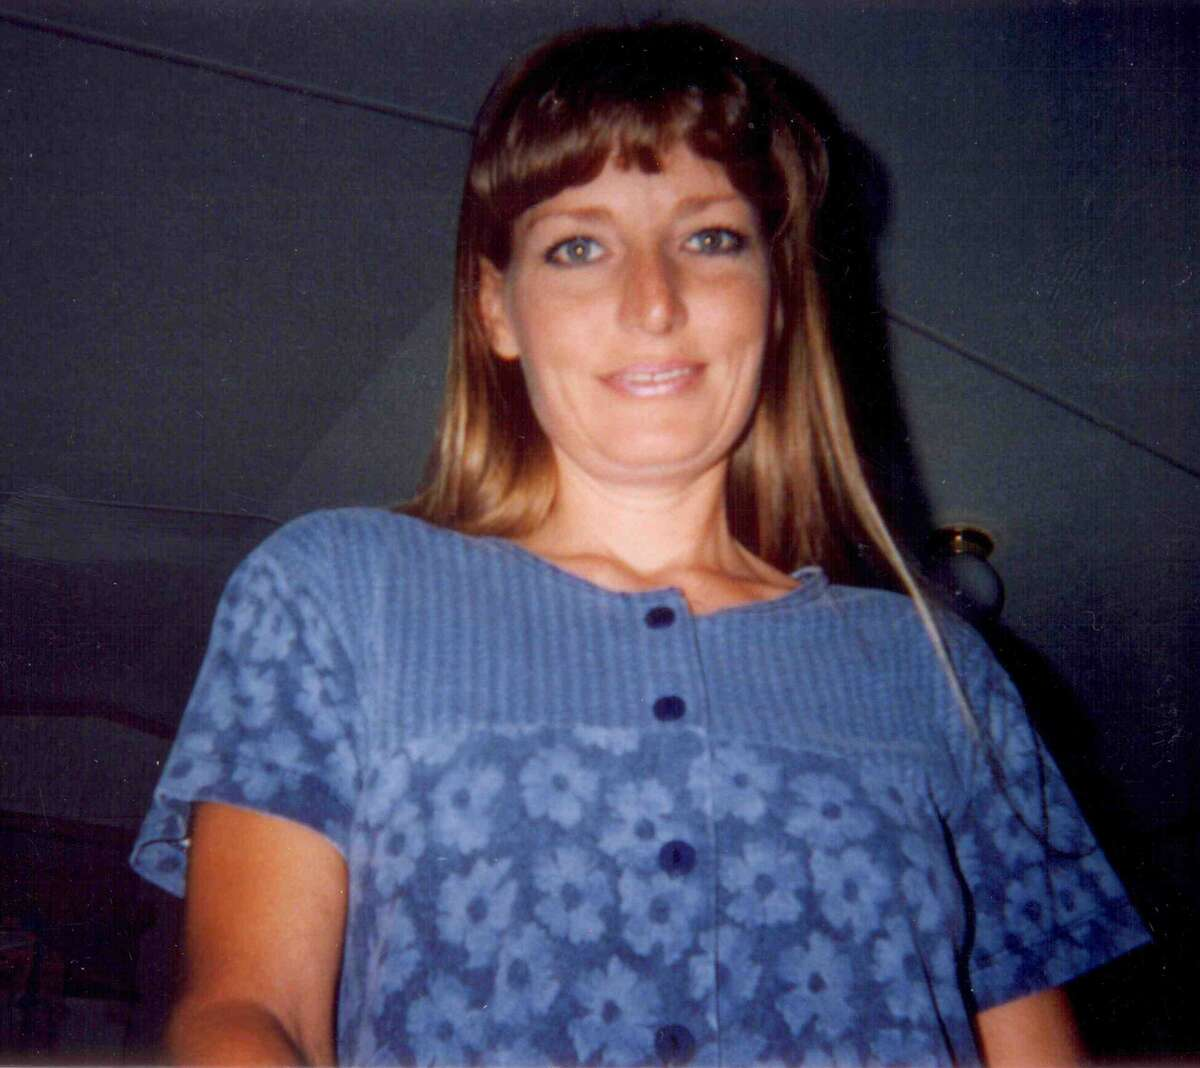 On April 5, 2009, Pamela McDonald, 39, was reported missing by her husband, Charles McDonald. She was last seen leaving her residence in south Midland County three days earlier.